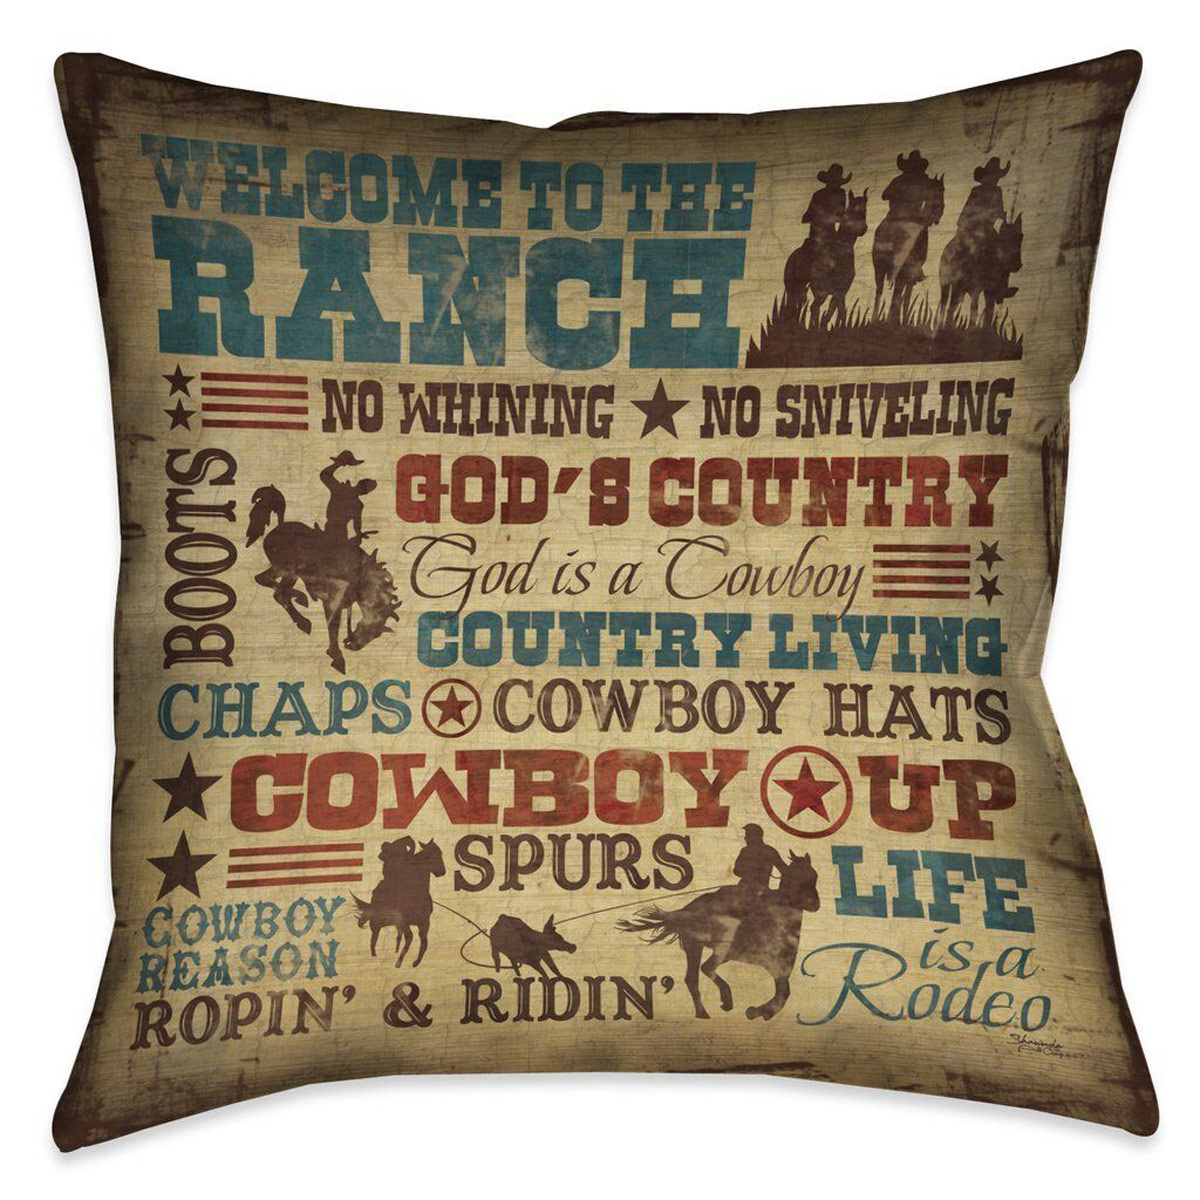 Cowboy Lifestyle 20 x 20 Outdoor Pillow